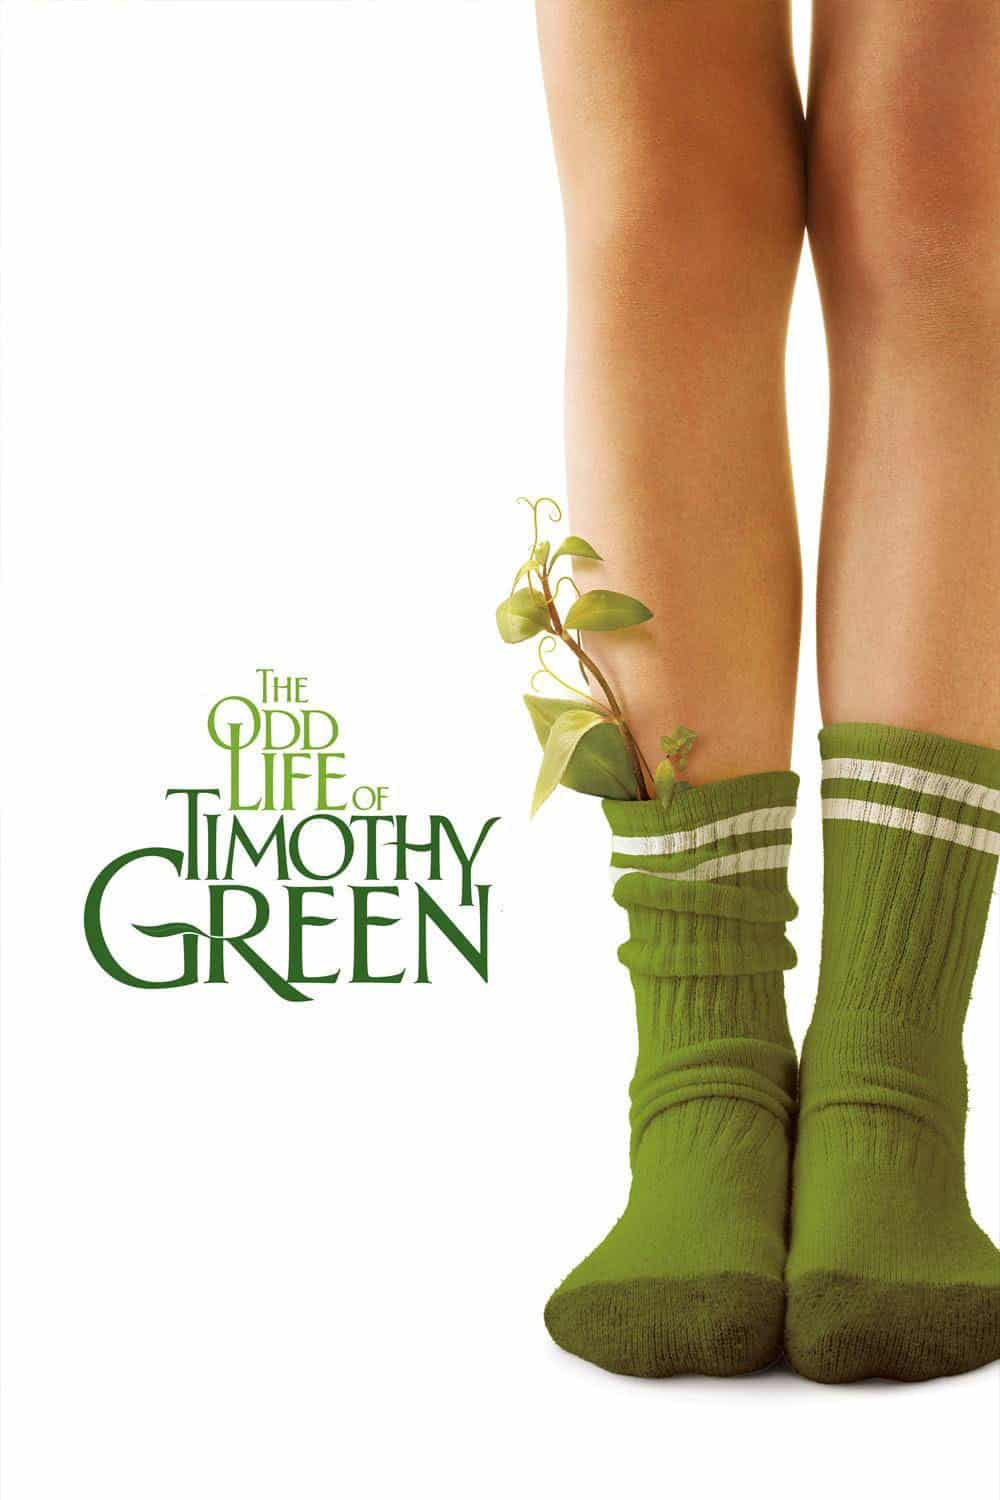 The Odd Life of Timothy Green, 2012